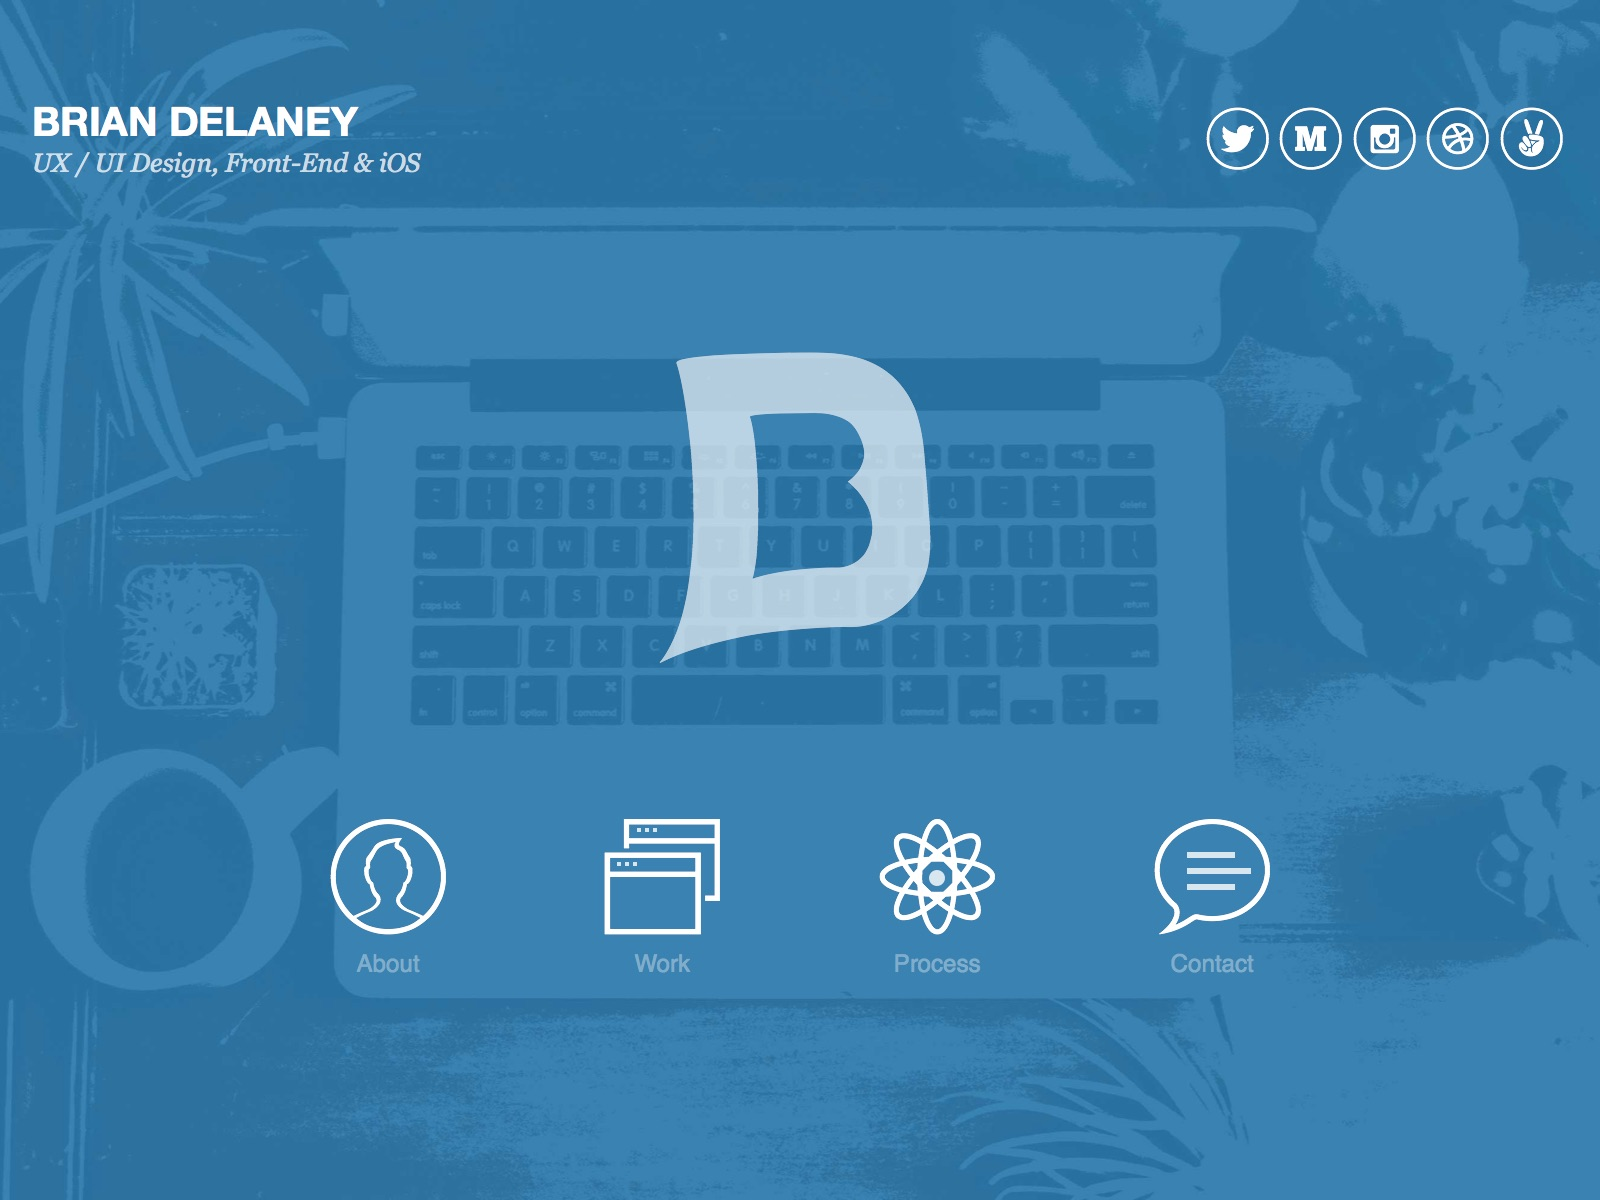 Brian Delaney - UX / UI Designer and Front-End Dev in San Francisco, California